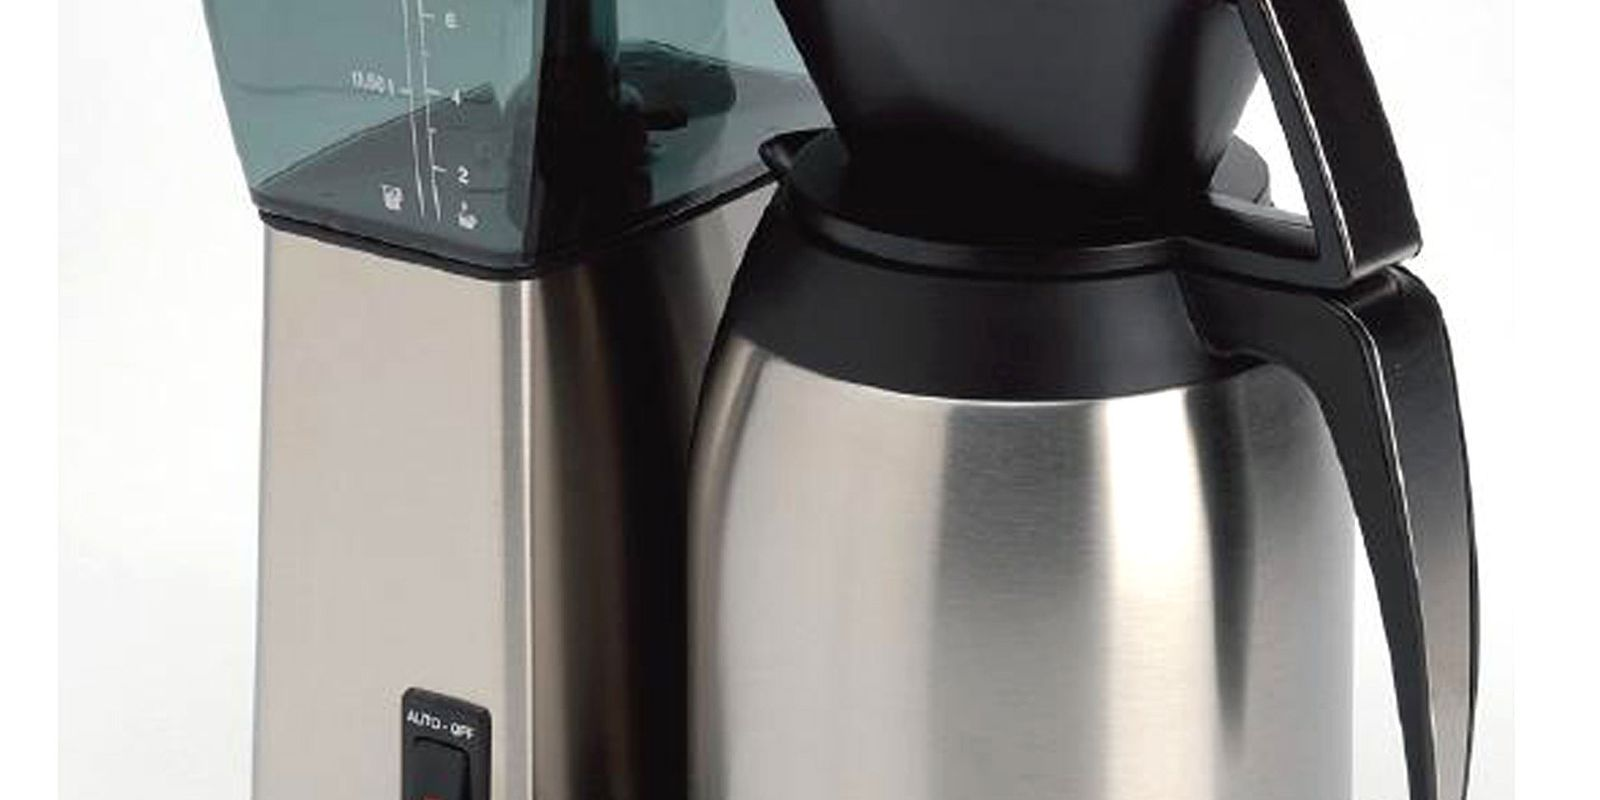 Bonavita Coffee Maker Replacement Thermal Carafe : Bonavita 8-Cup Coffee Brewer With Thermal Carafe #BV 1800TH Review